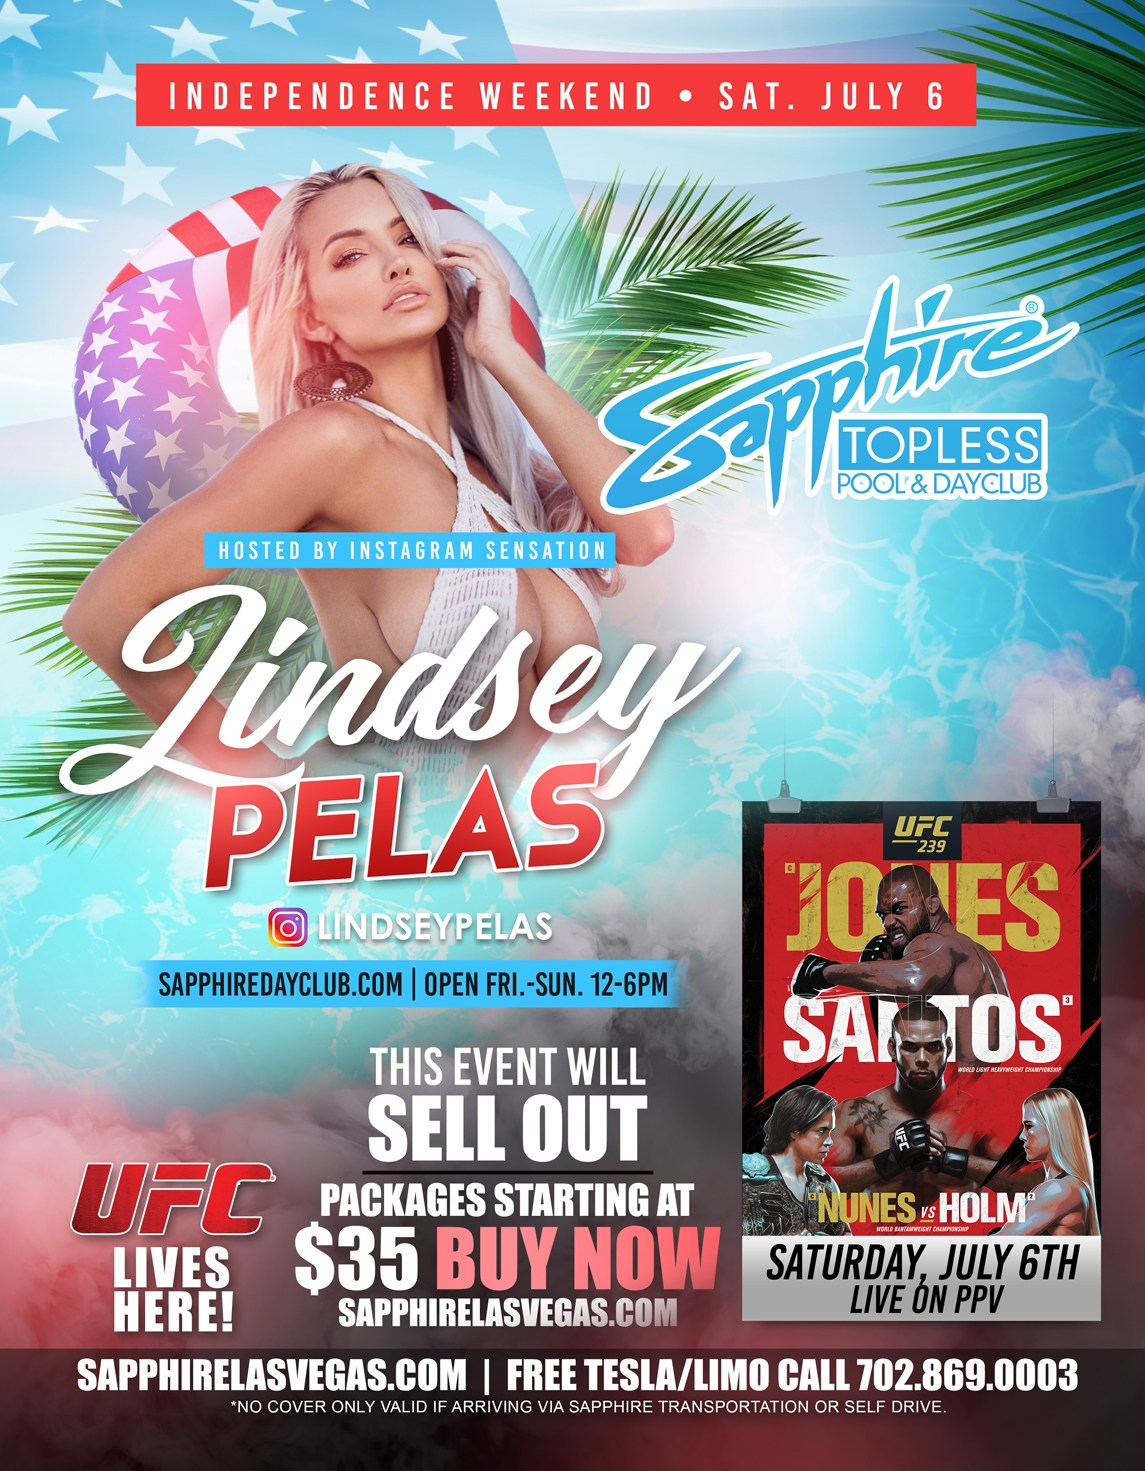 Hosted by Lindsey Pelas